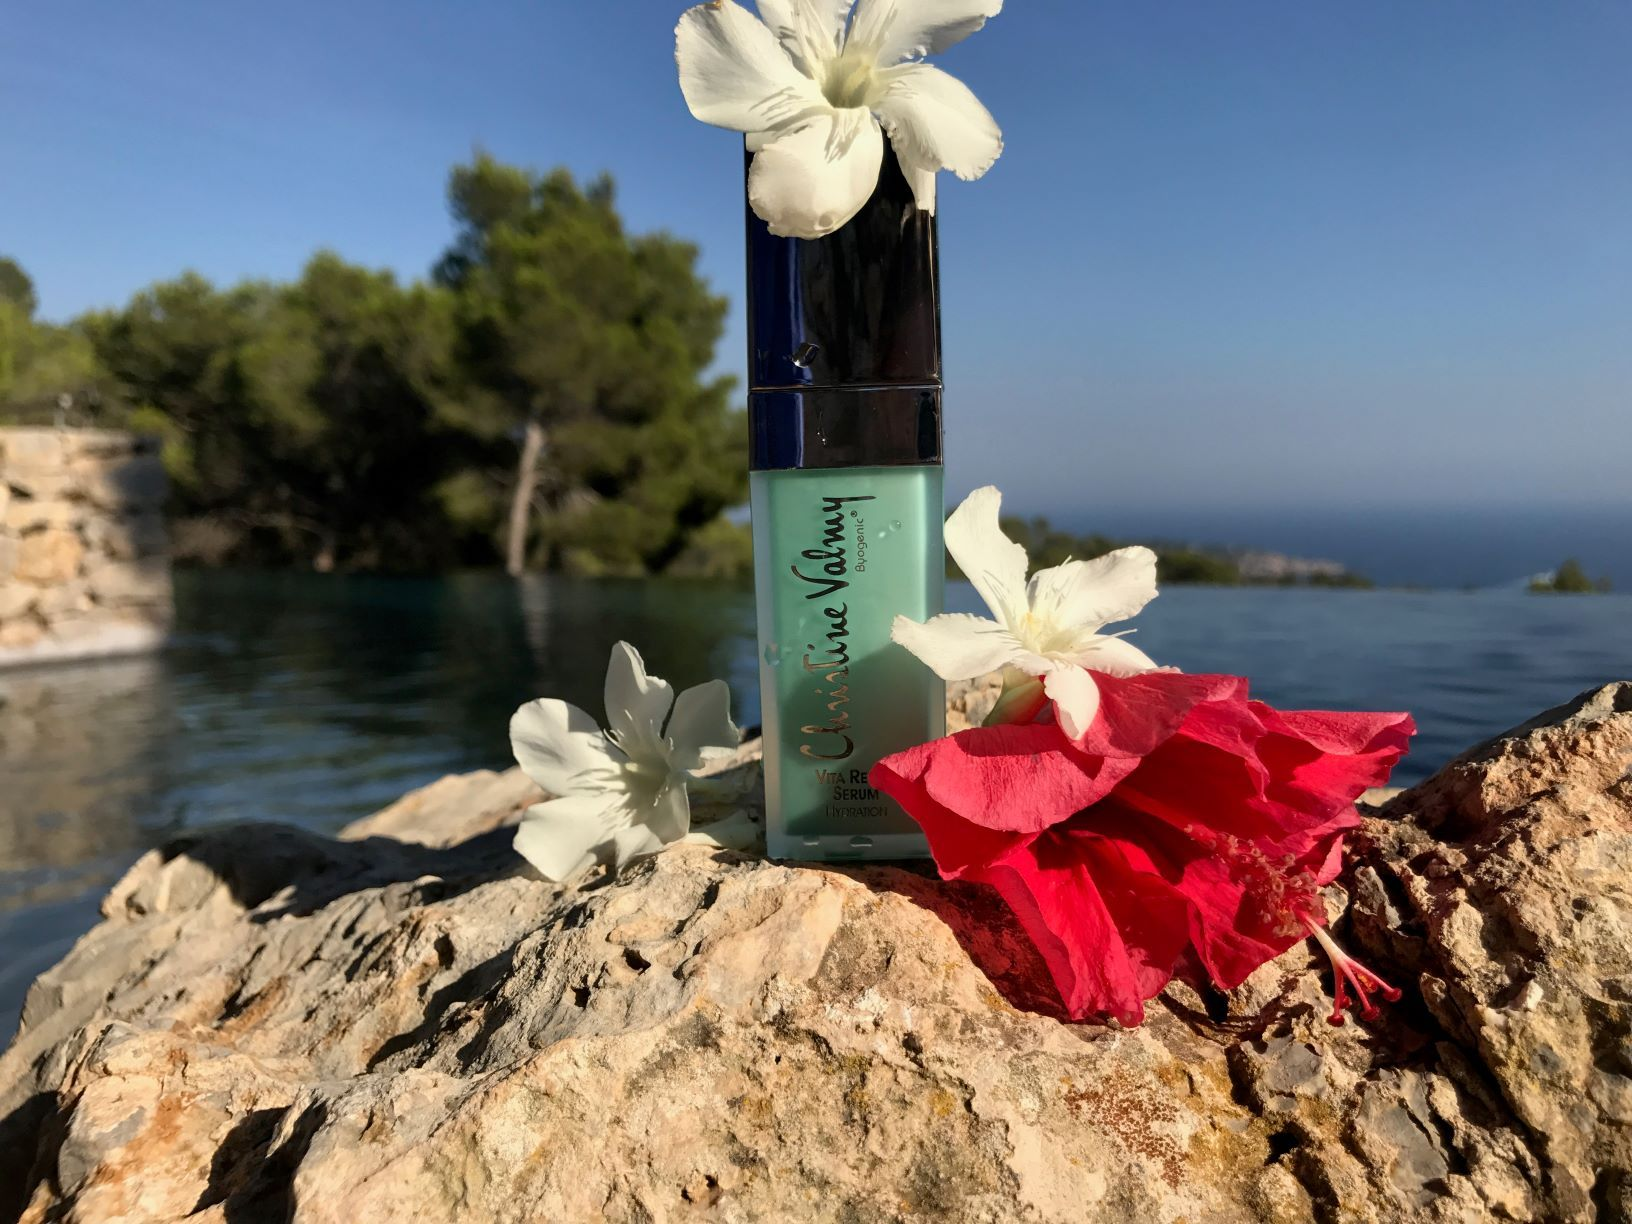 Christine Valmy Skin Care Product on rocks, surrounded by flowers, in front of a body of water.